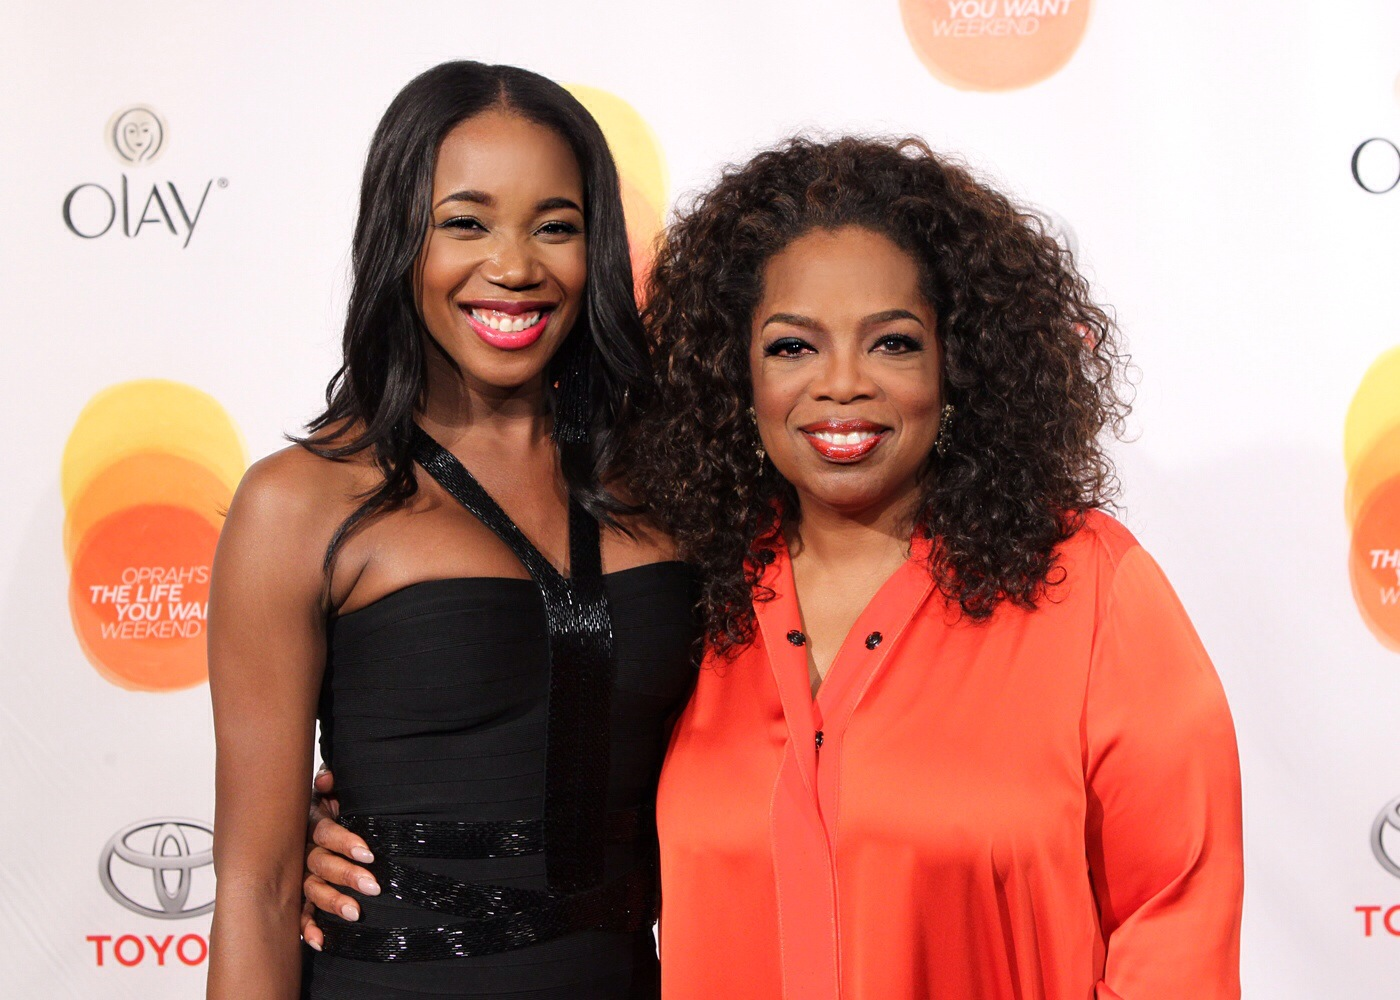 Oprah Winfrey The Life You Want Tour